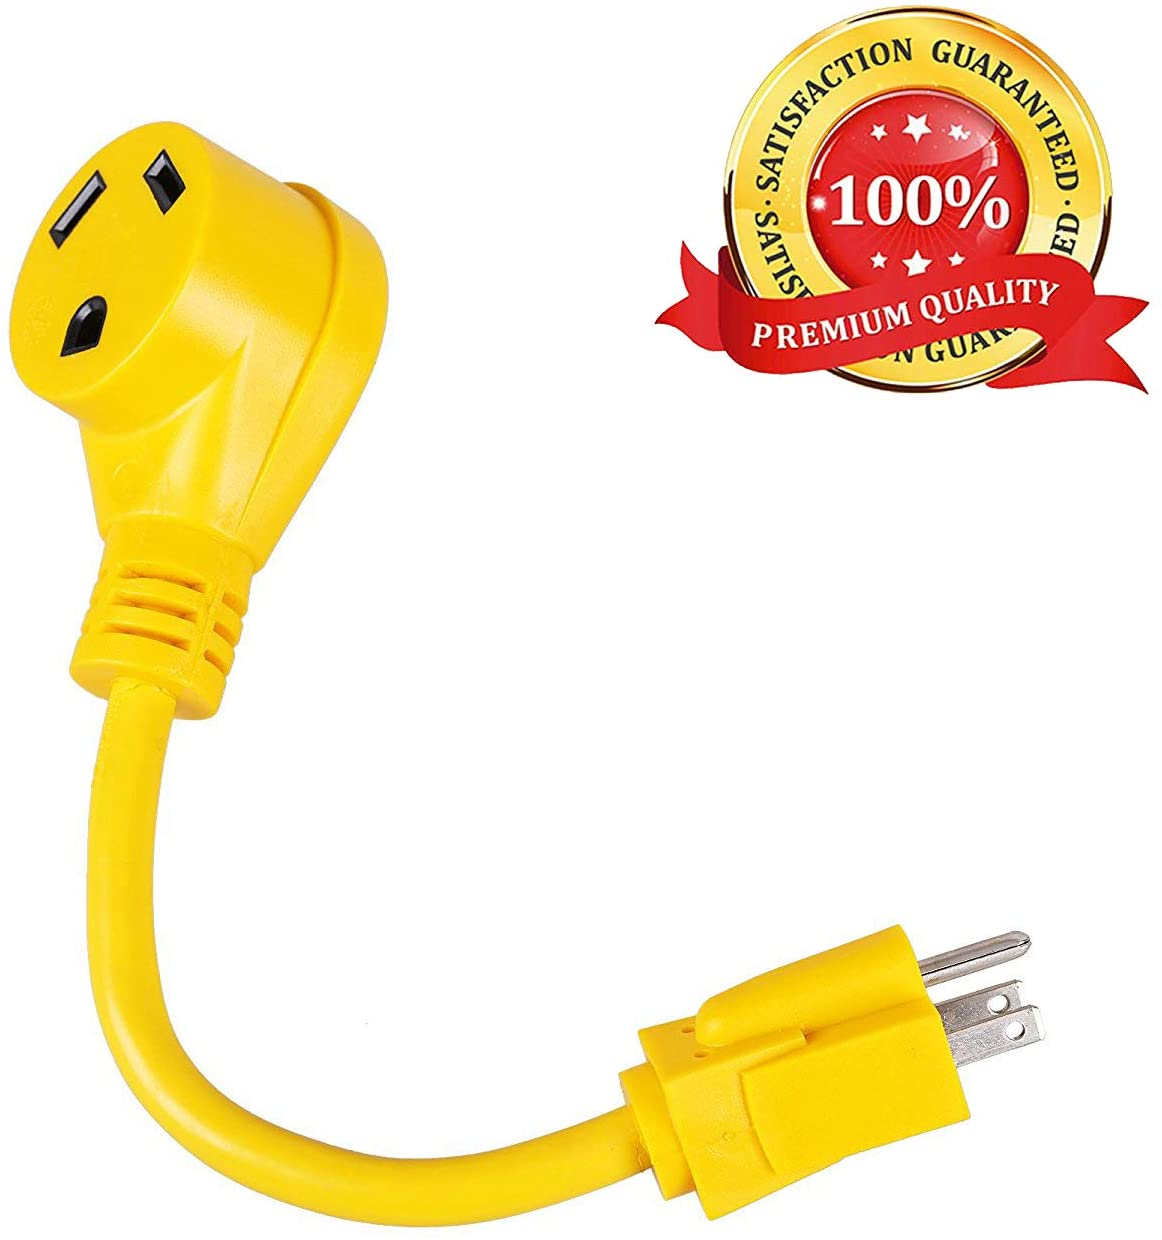 Epicord RV Power Cord Dogbone Adapter,Innovative 180 Degree Curved Design-15 Amp Male to 30 Amp Female,12'' 12AWG/3Cord